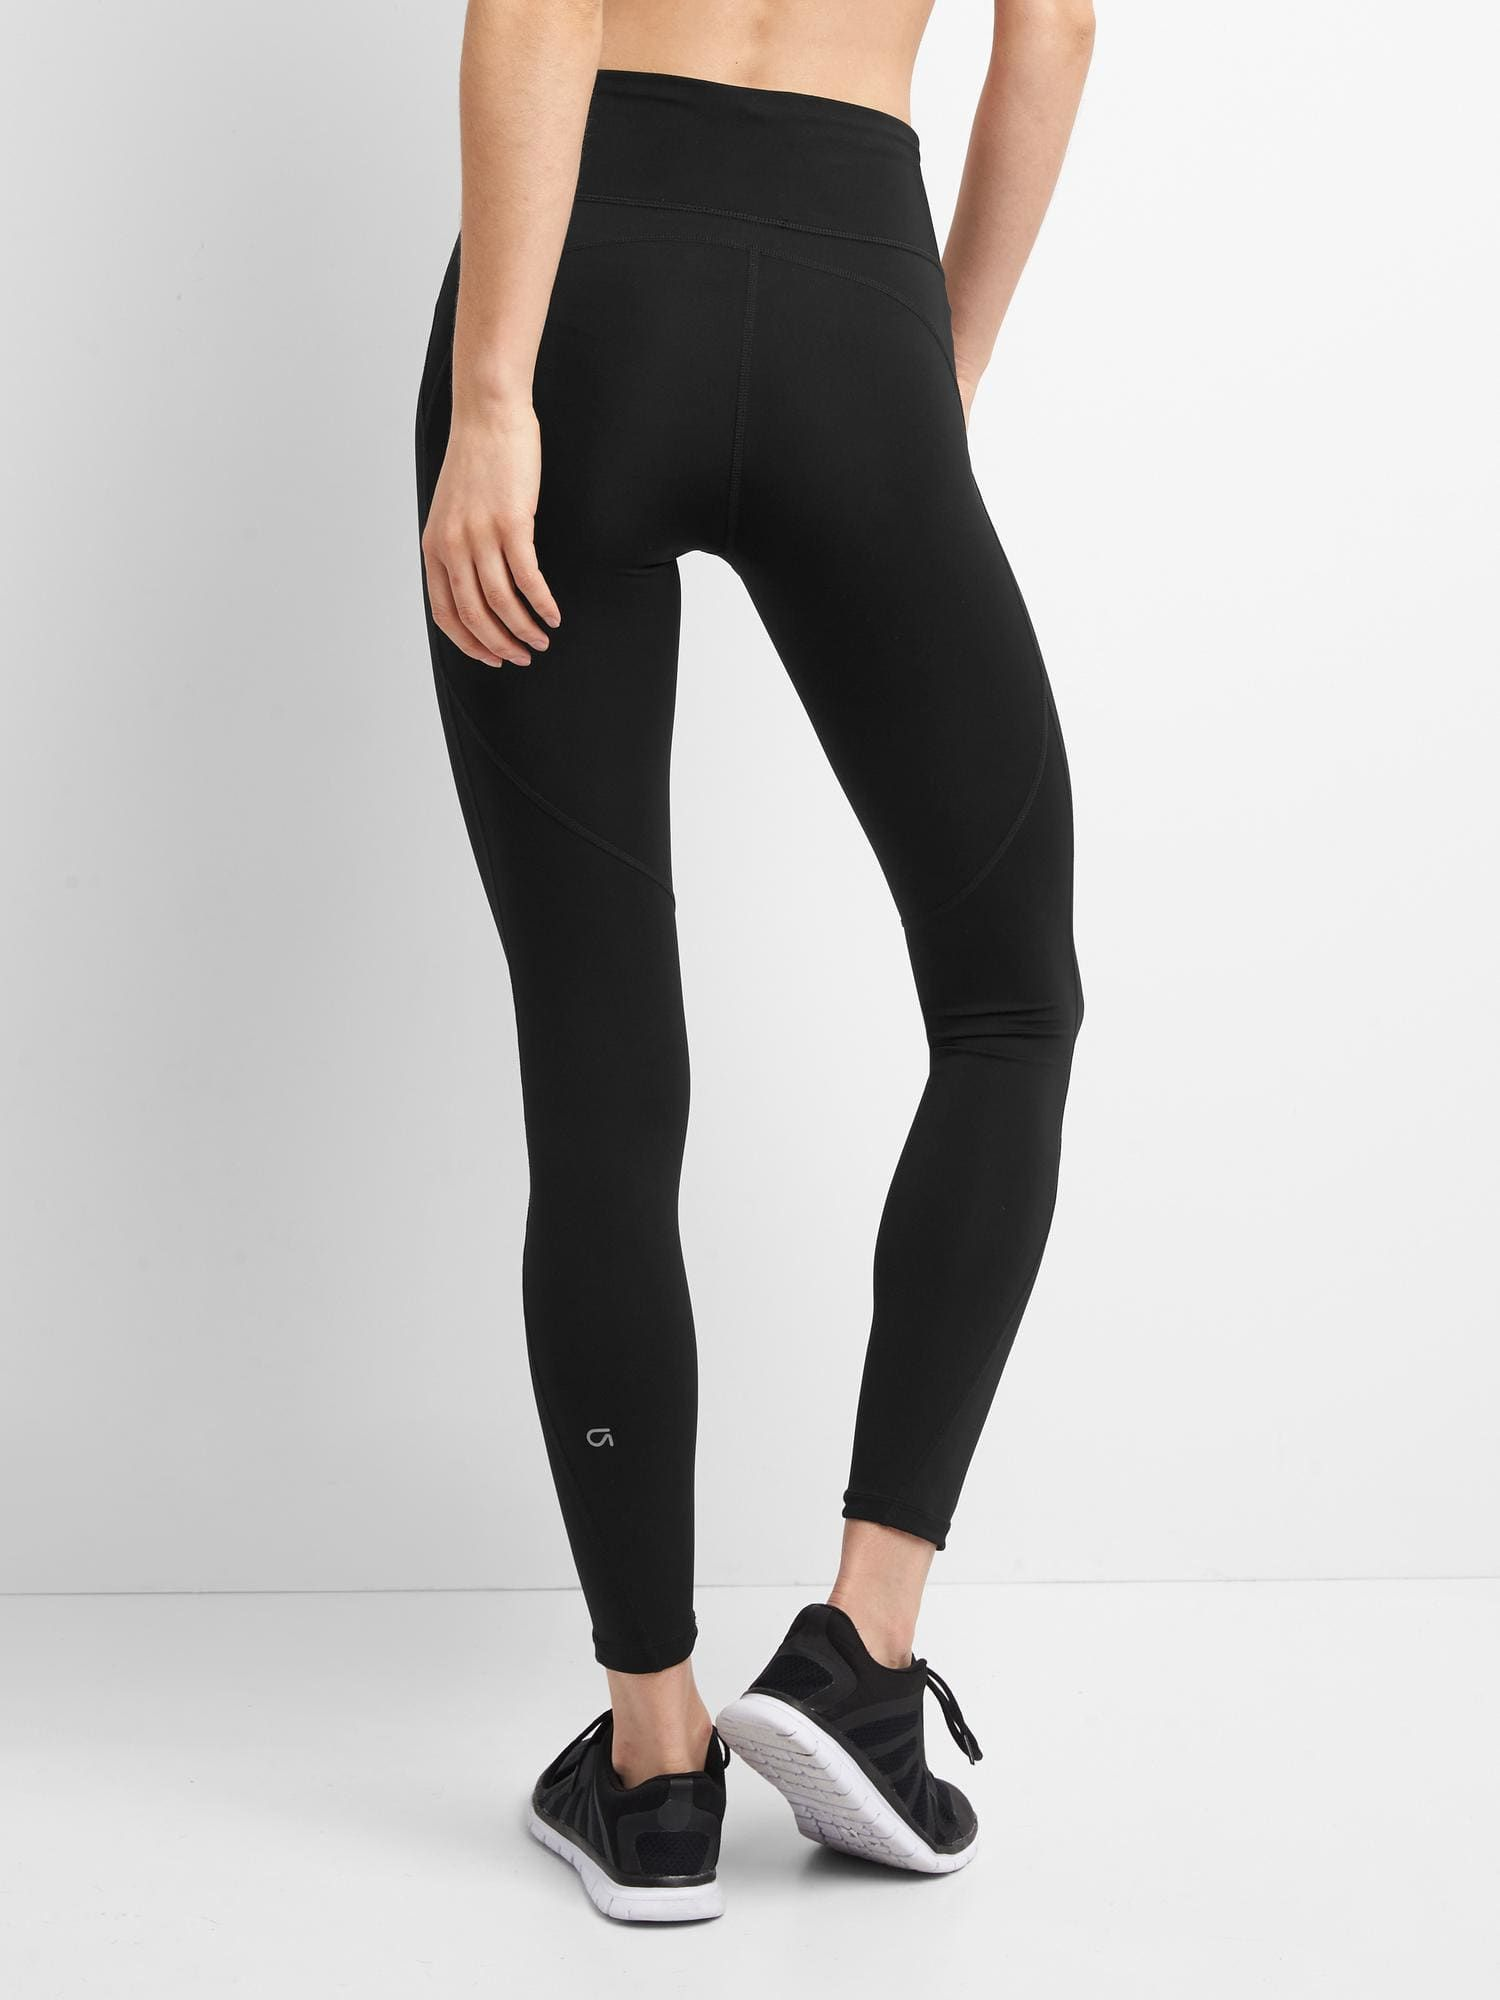 9a7dd0bf44 GapFit Full Length Leggings in Sculpt Compression | Wish list | Gap ...